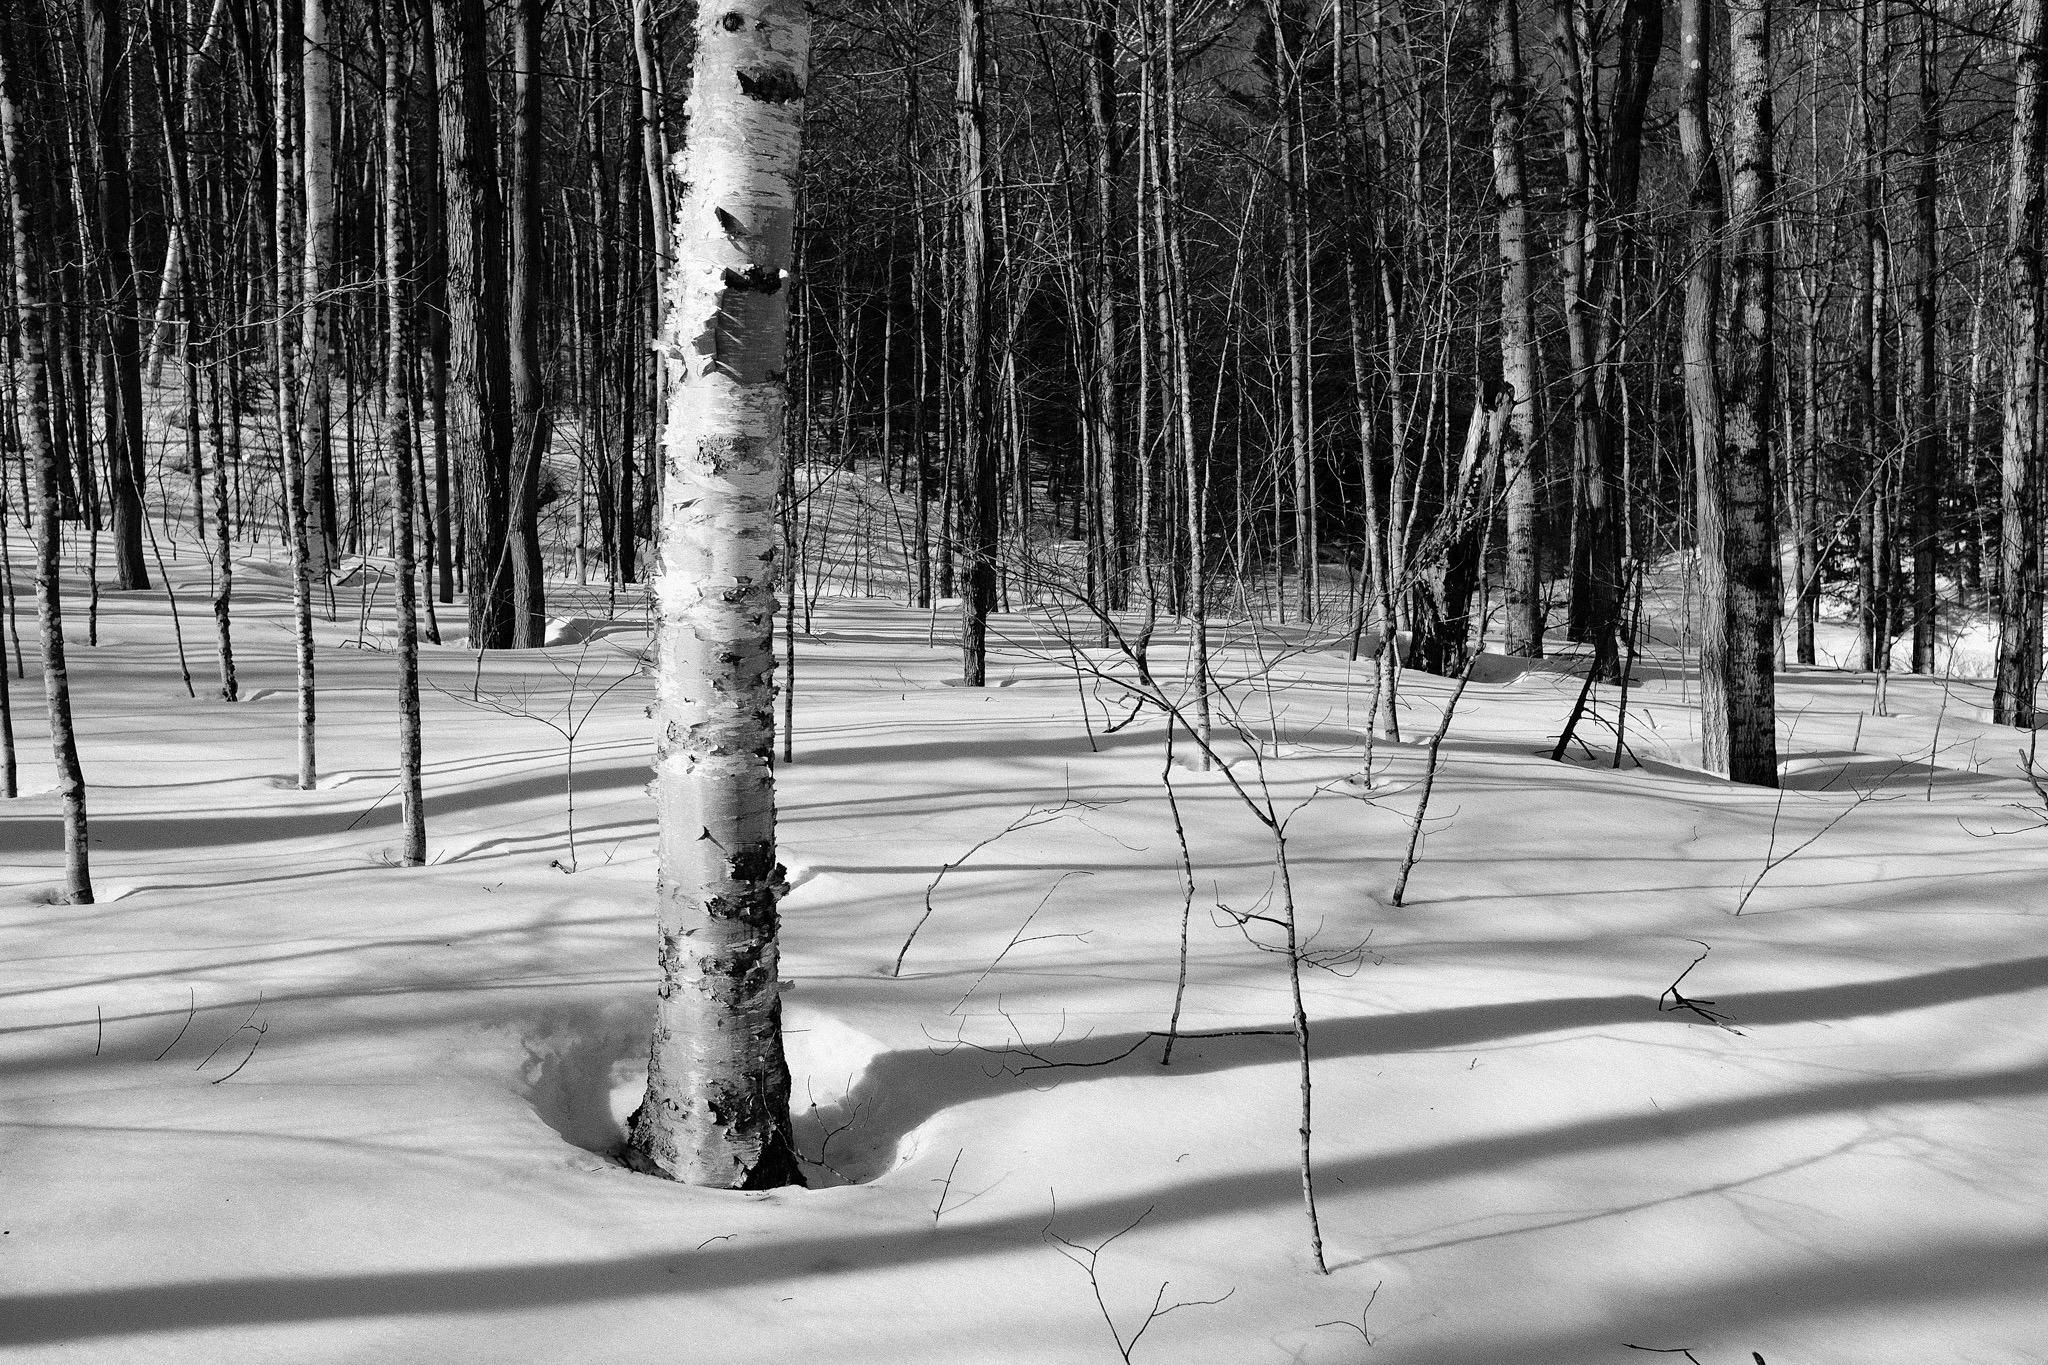 Black and white image of a birch tree in the forest. Long shadows falling across the snow covered ground.